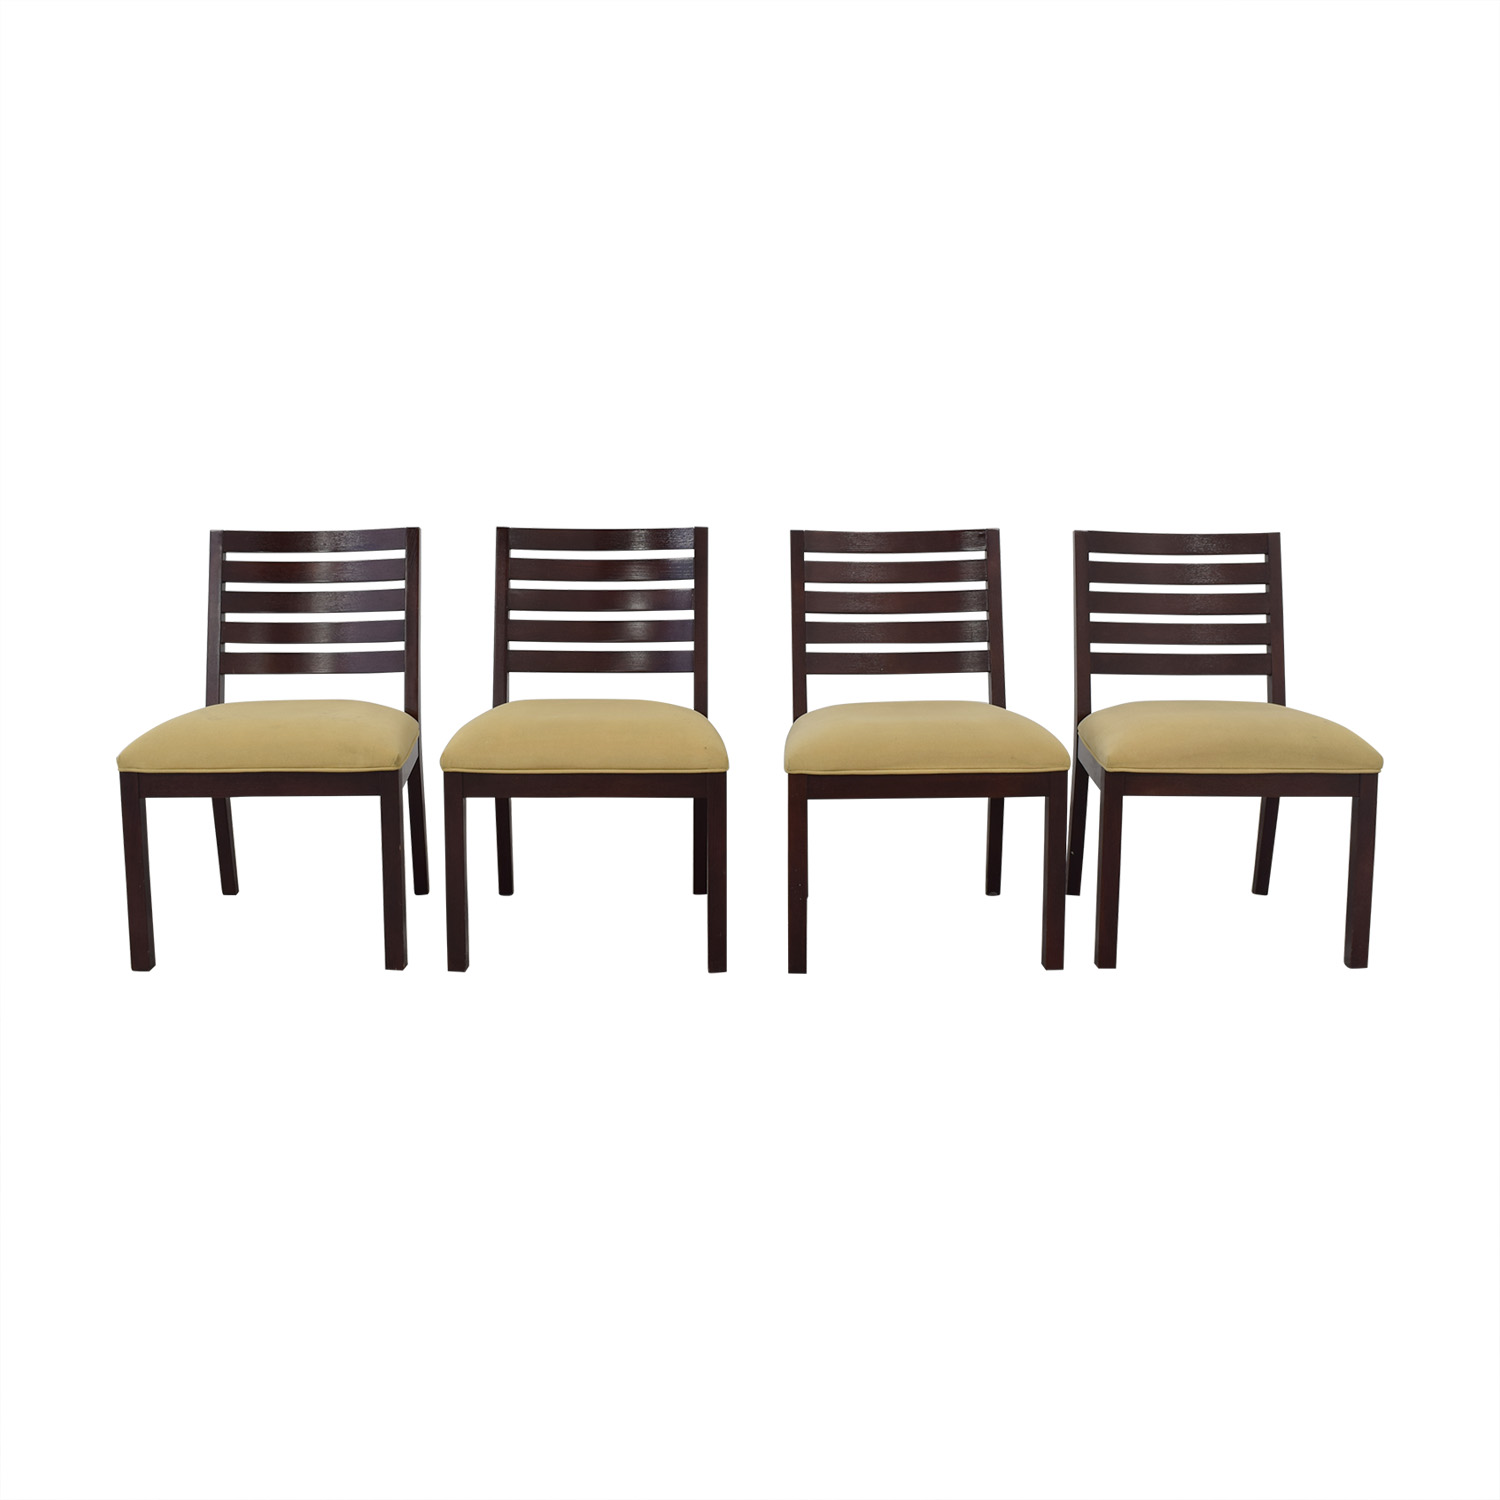 Ethan Allen Ethan Allen Dining Chairs second hand